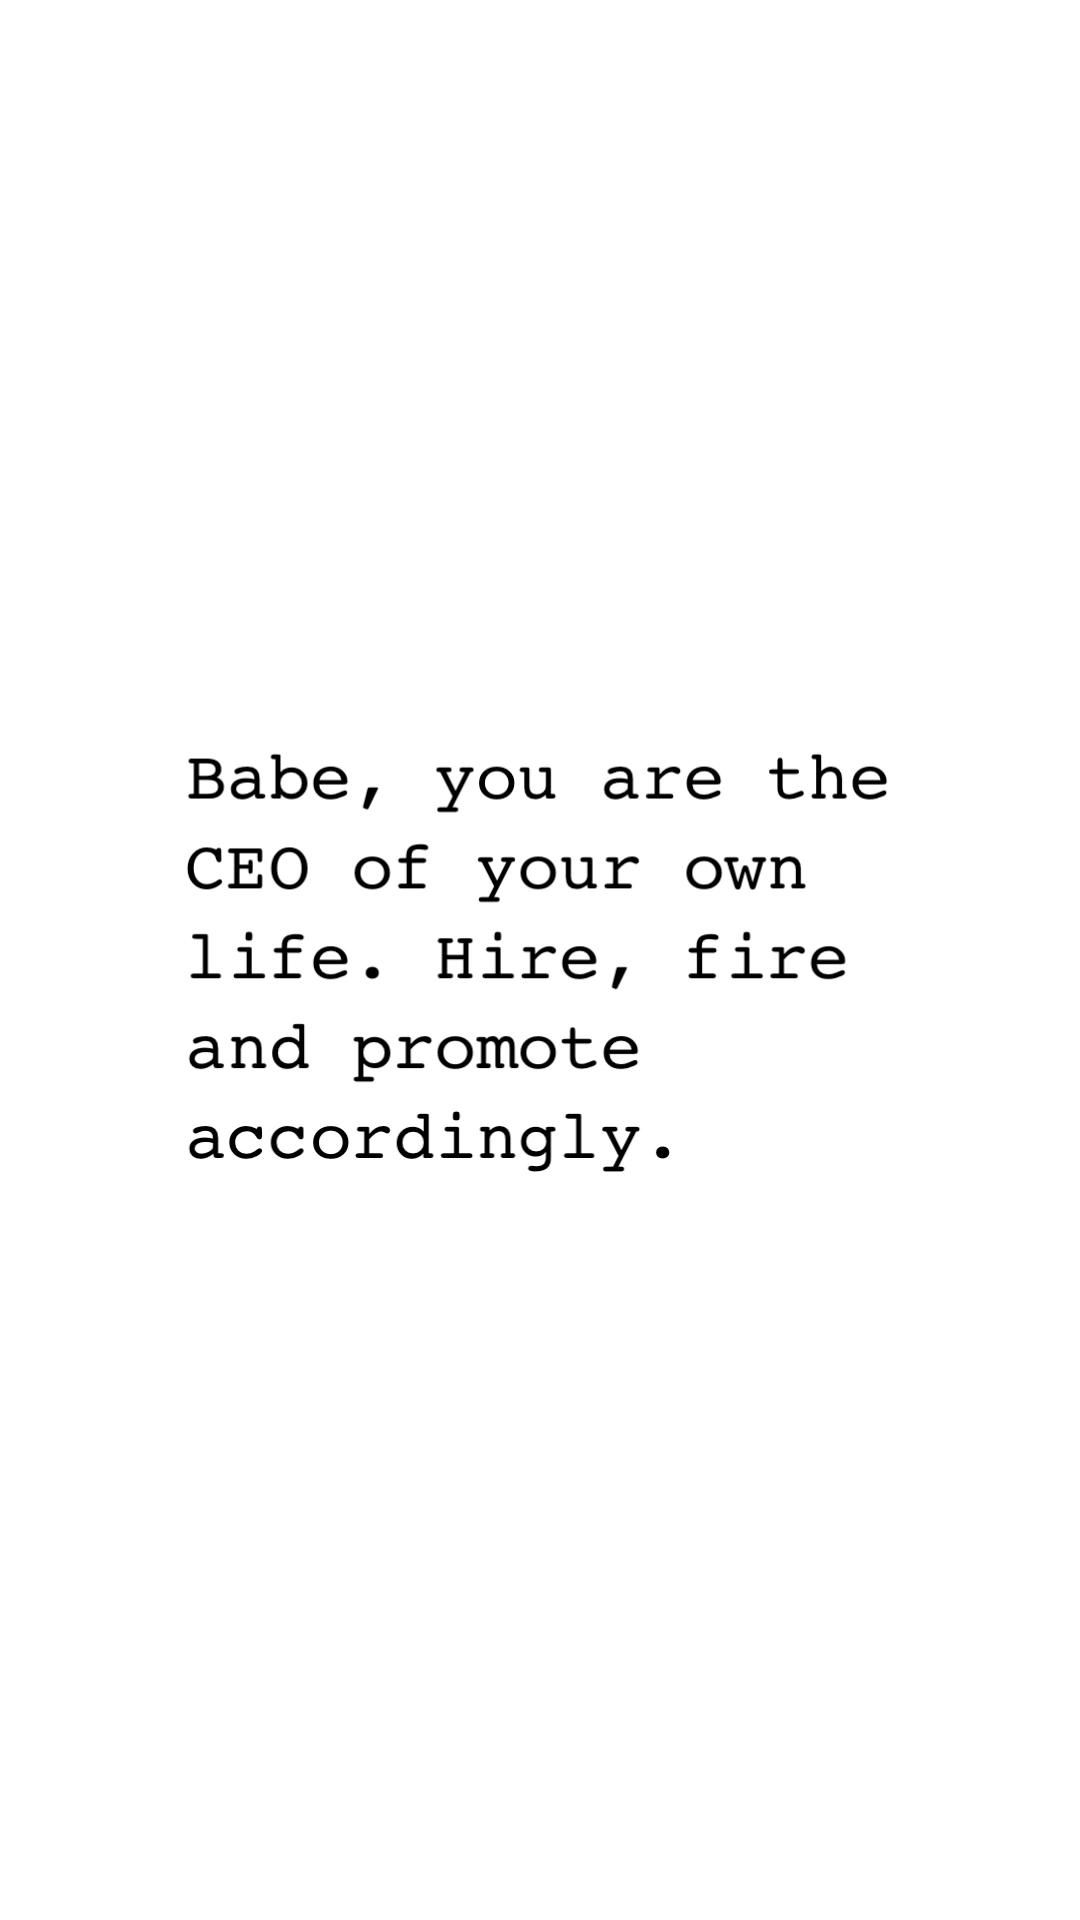 You are the CEO of your one LIFE!